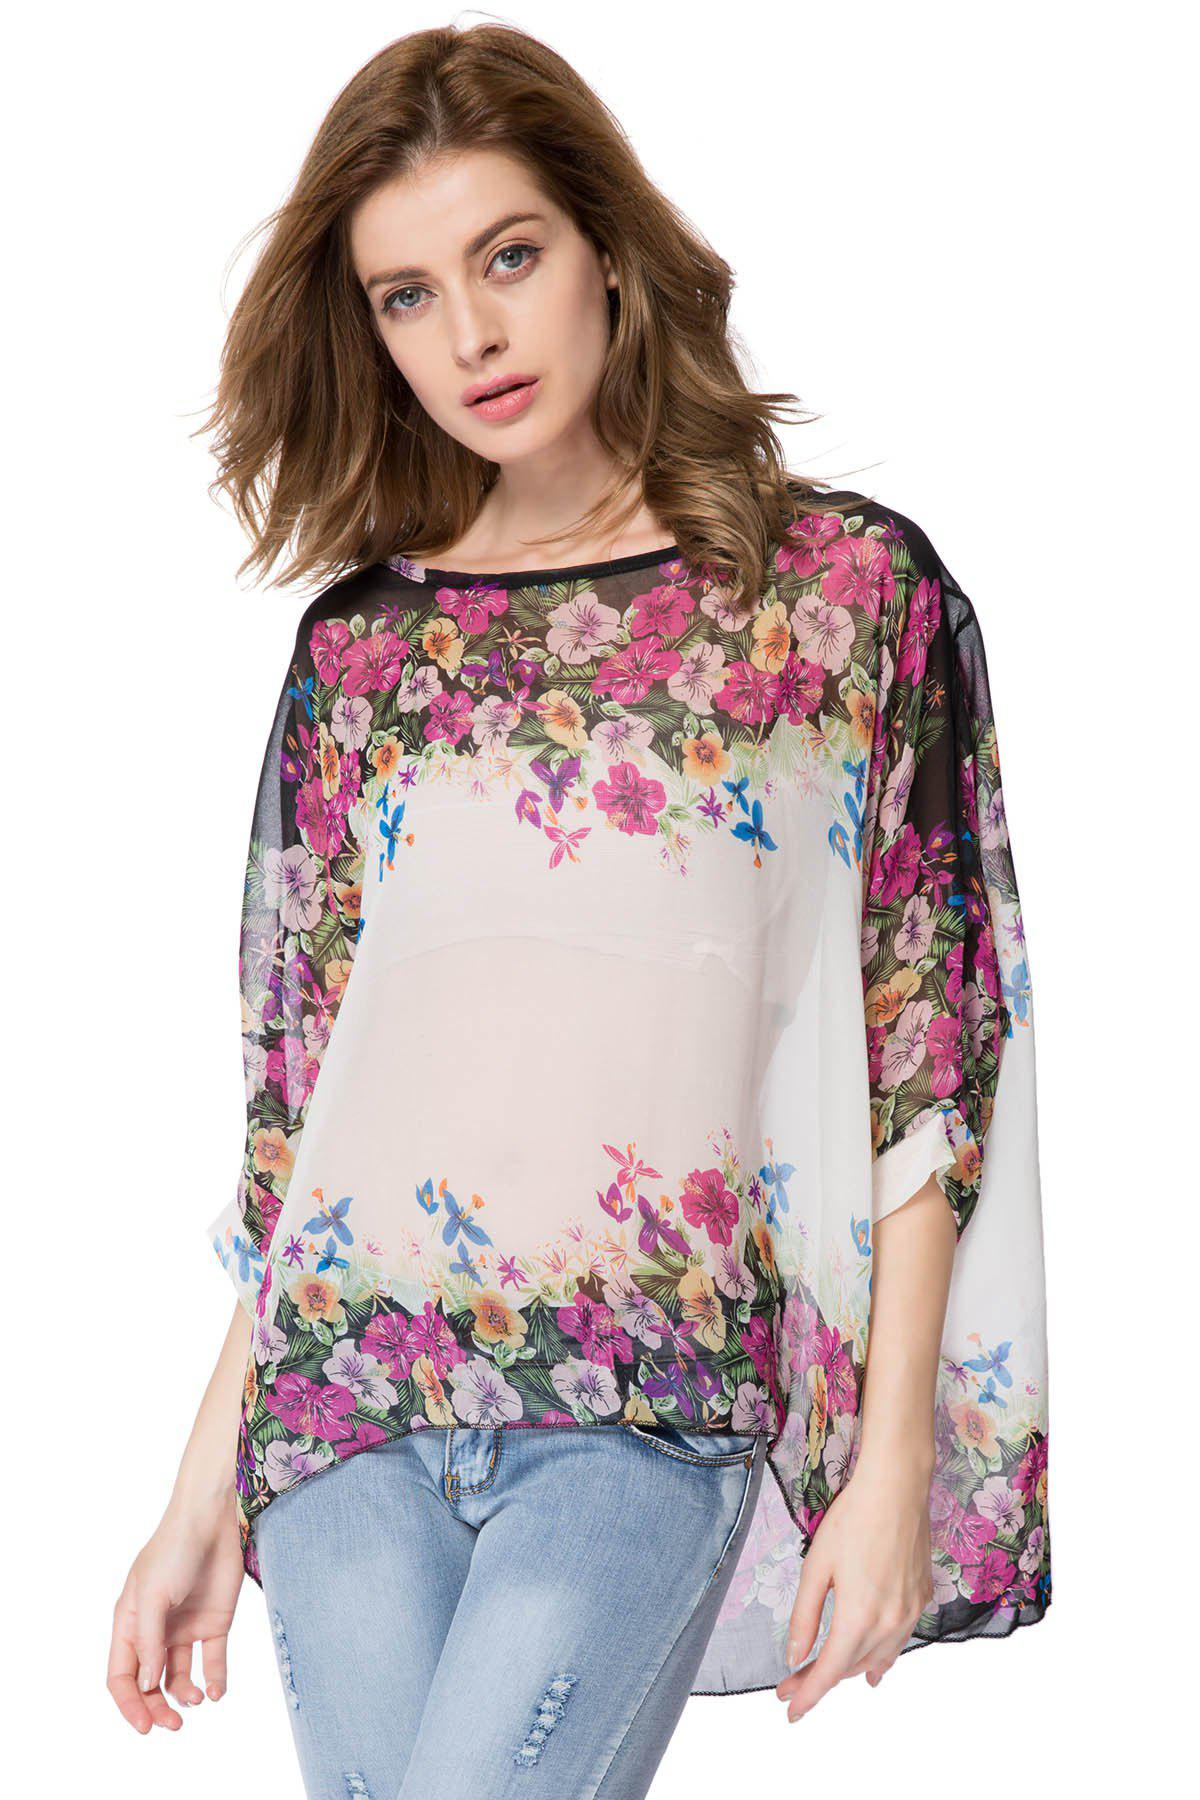 Bohemian Style Women Oversized Dolman Sleeve Floral Chiffon Tops Blouse - AS THE PICTURE L